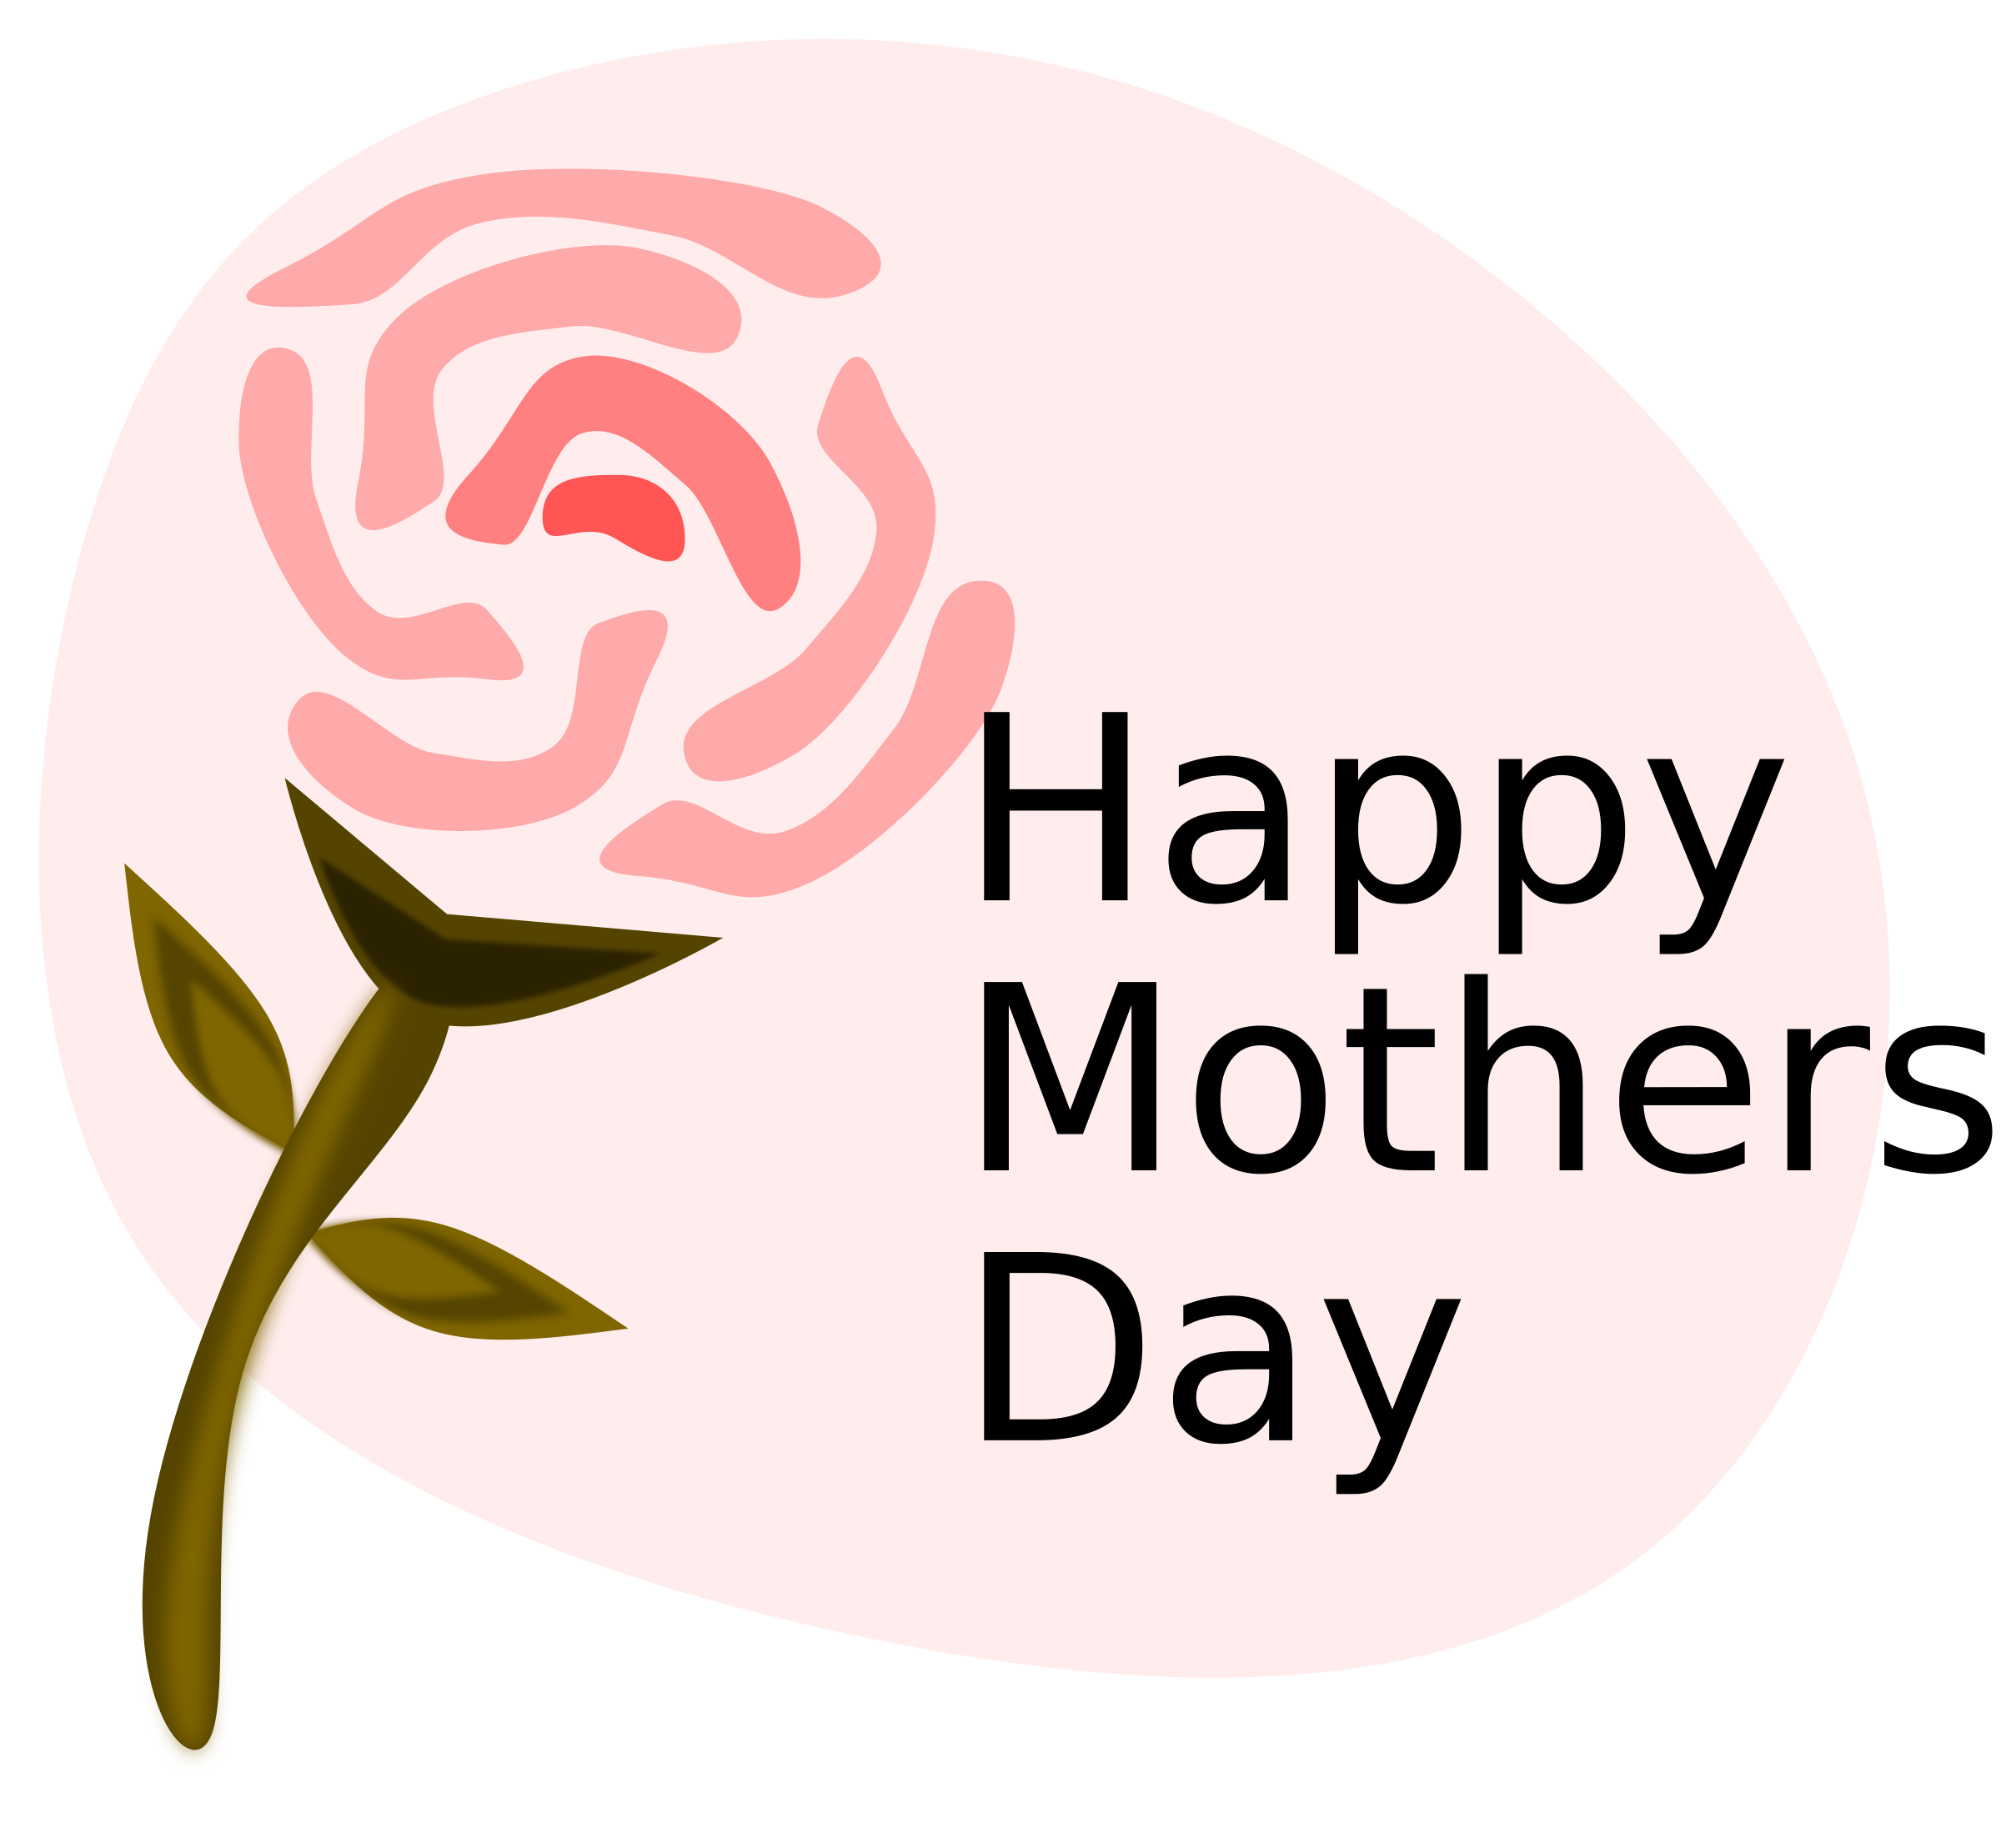 This free Icons Png design of Happy Motheru0027s Day PlusPng.com  - Happy Mothers Day Sign PNG